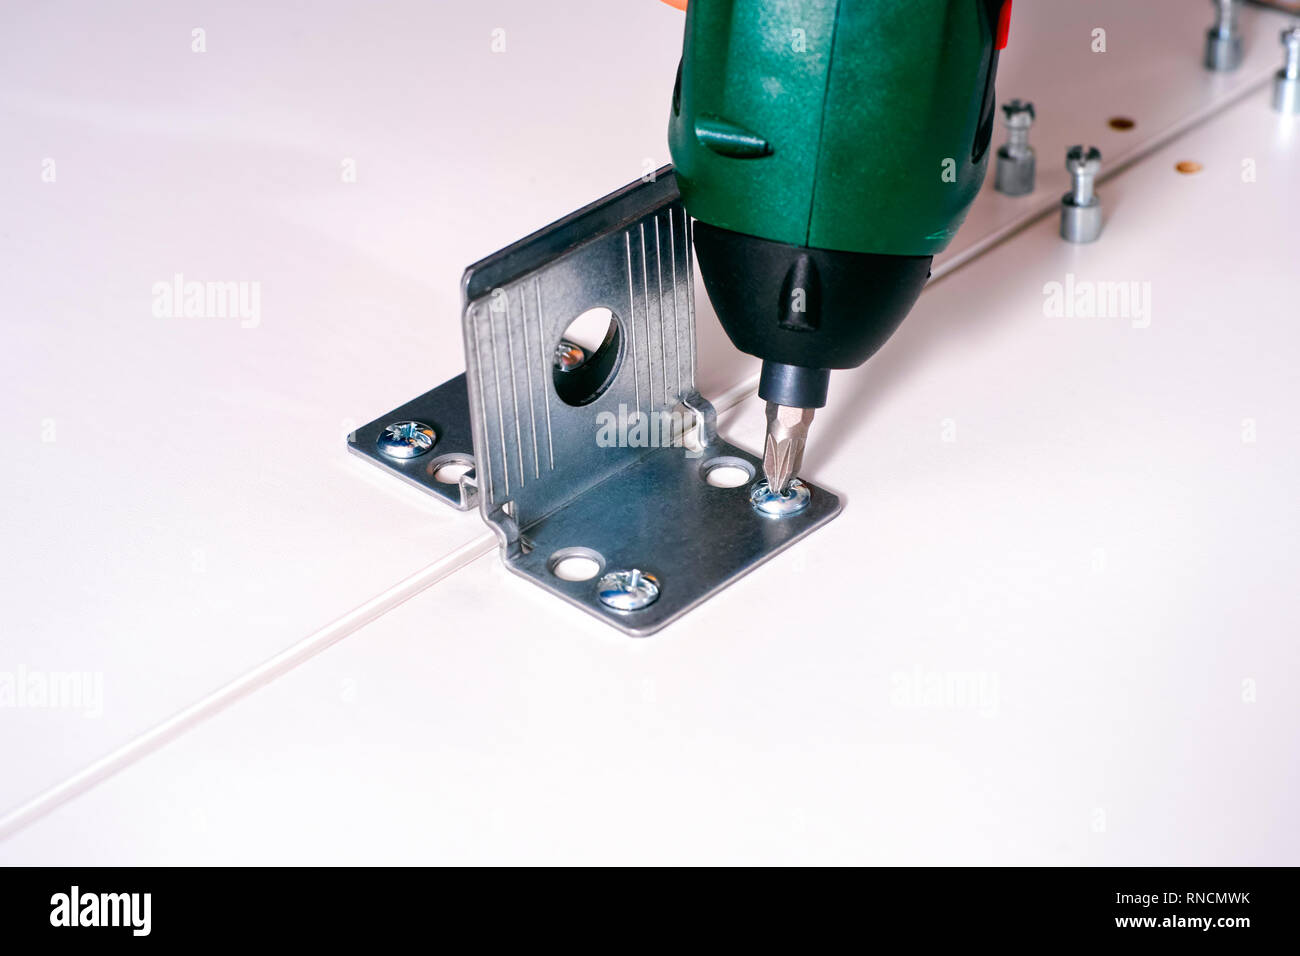 Screw drill twisting the screw into the furniture. Close-up. - Stock Image